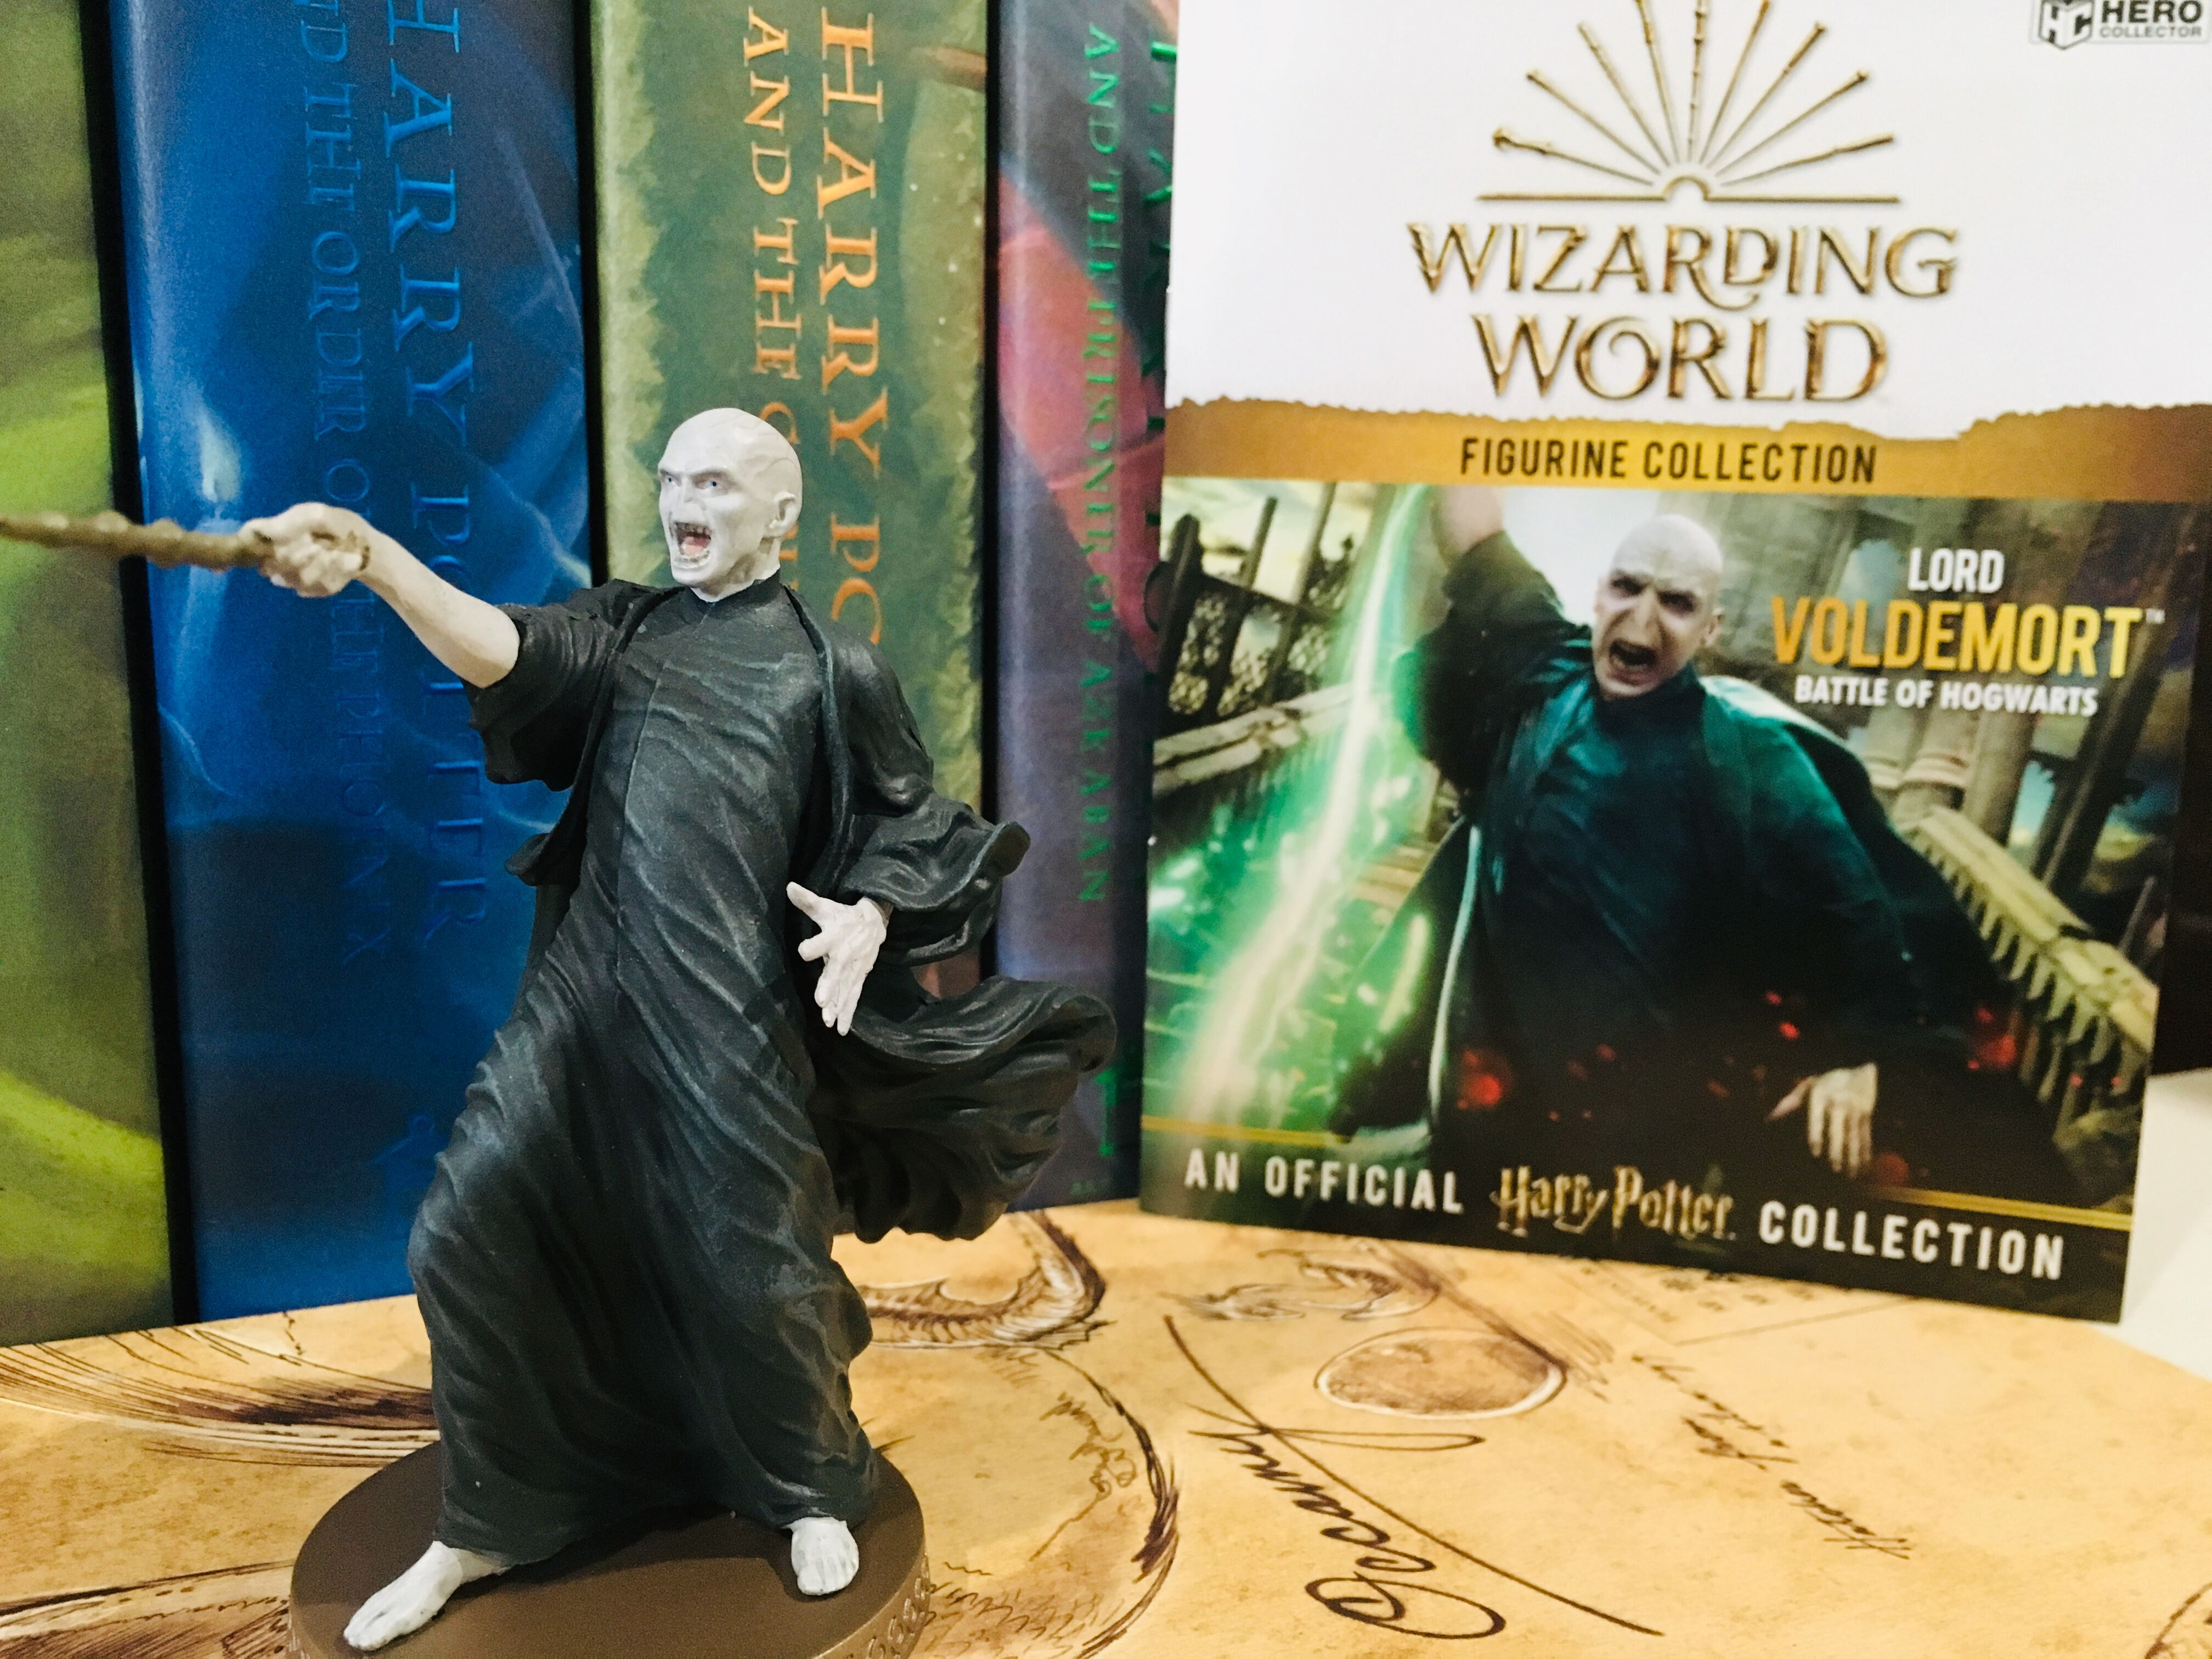 Eaglemoss Hero Collector Lord Voldemort Figurine comes with an exclusive booklet full of information that tells you all about your new wizarding world figurine.